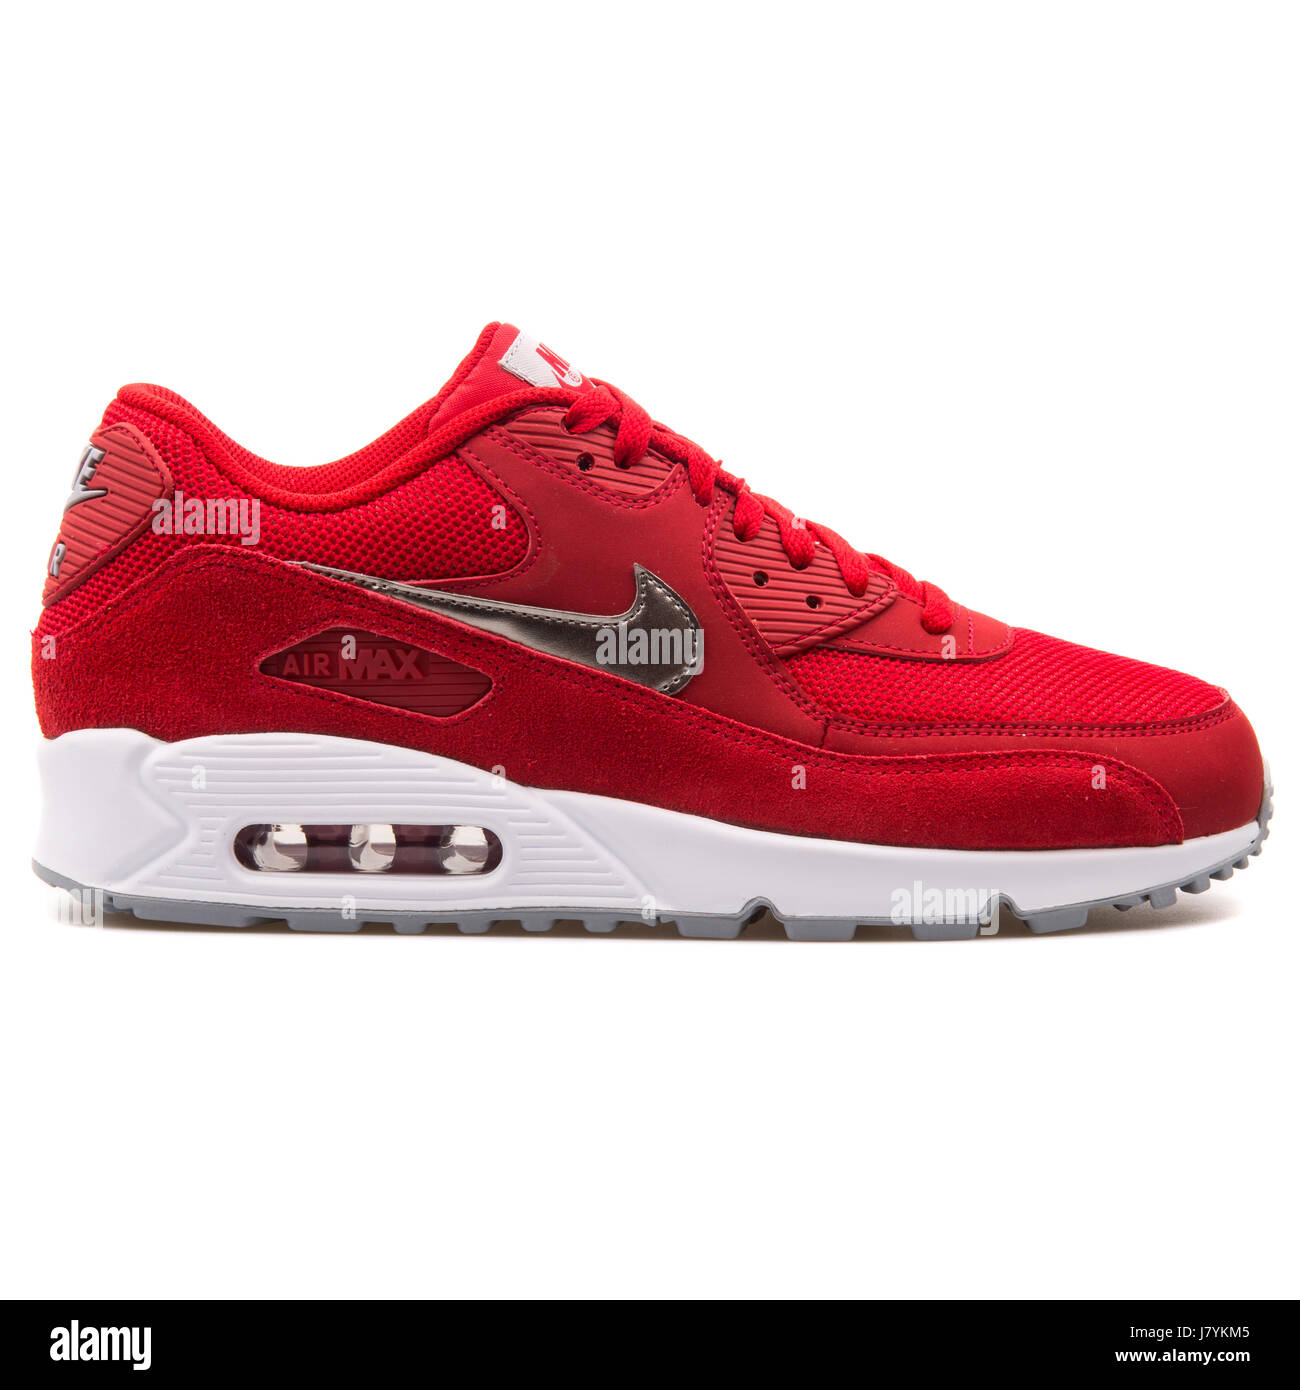 05cd4a35 Nike Air Max 90 Essential Red Men's Running Sneakers - 537384-602 ...